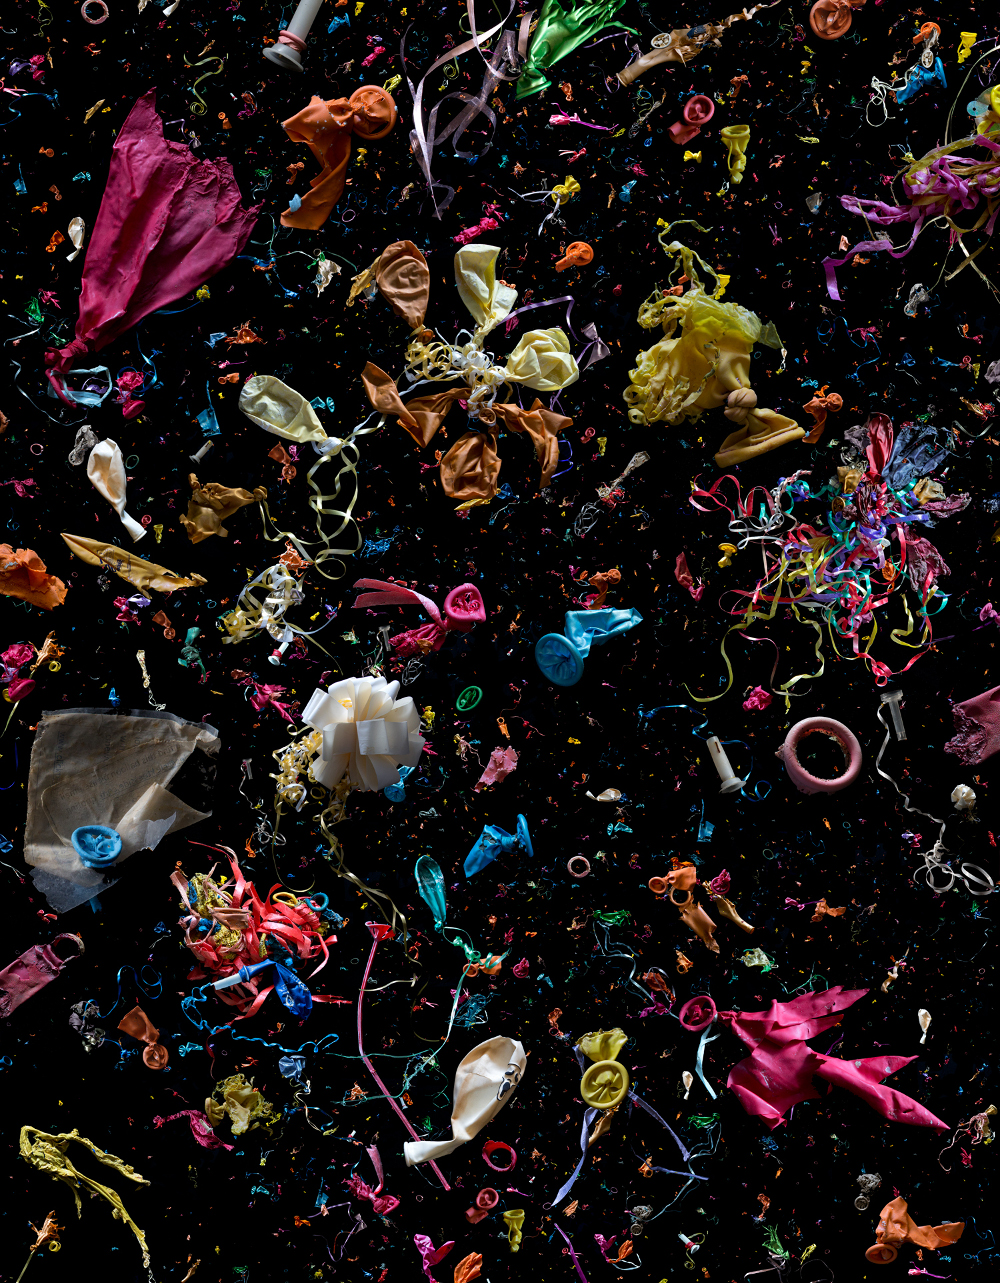 Ingredients; marine debris balloons collected from around the world.